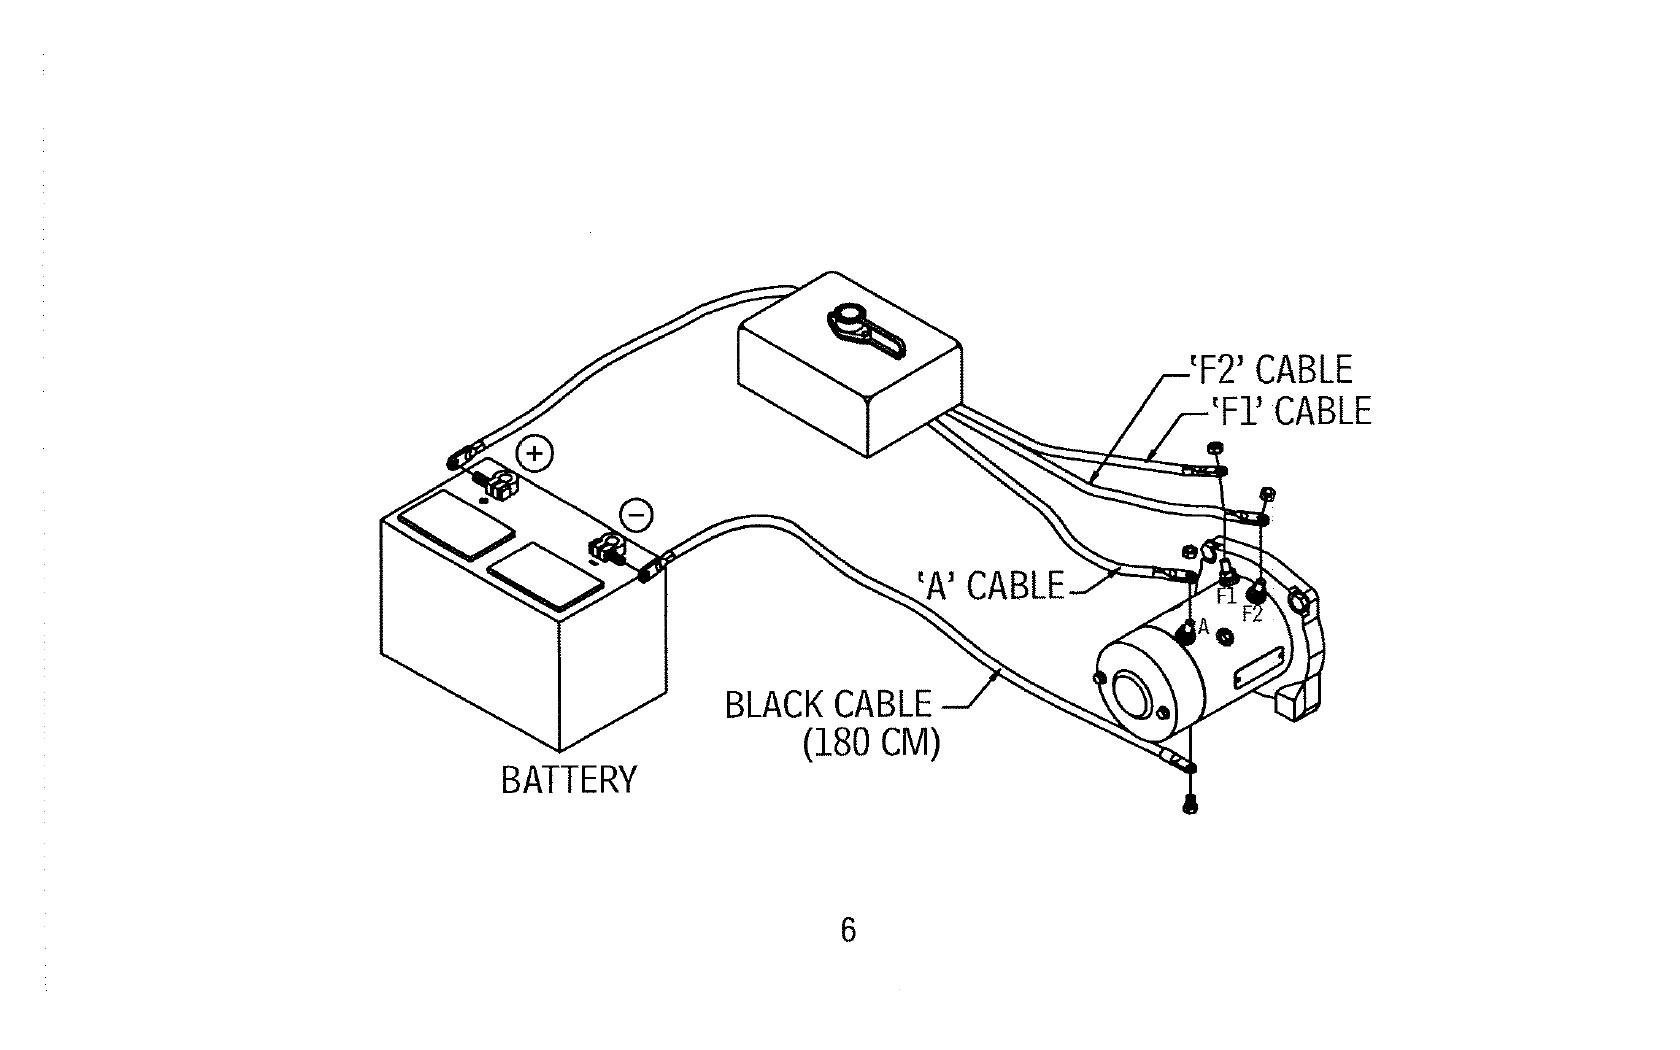 Warn Schematic